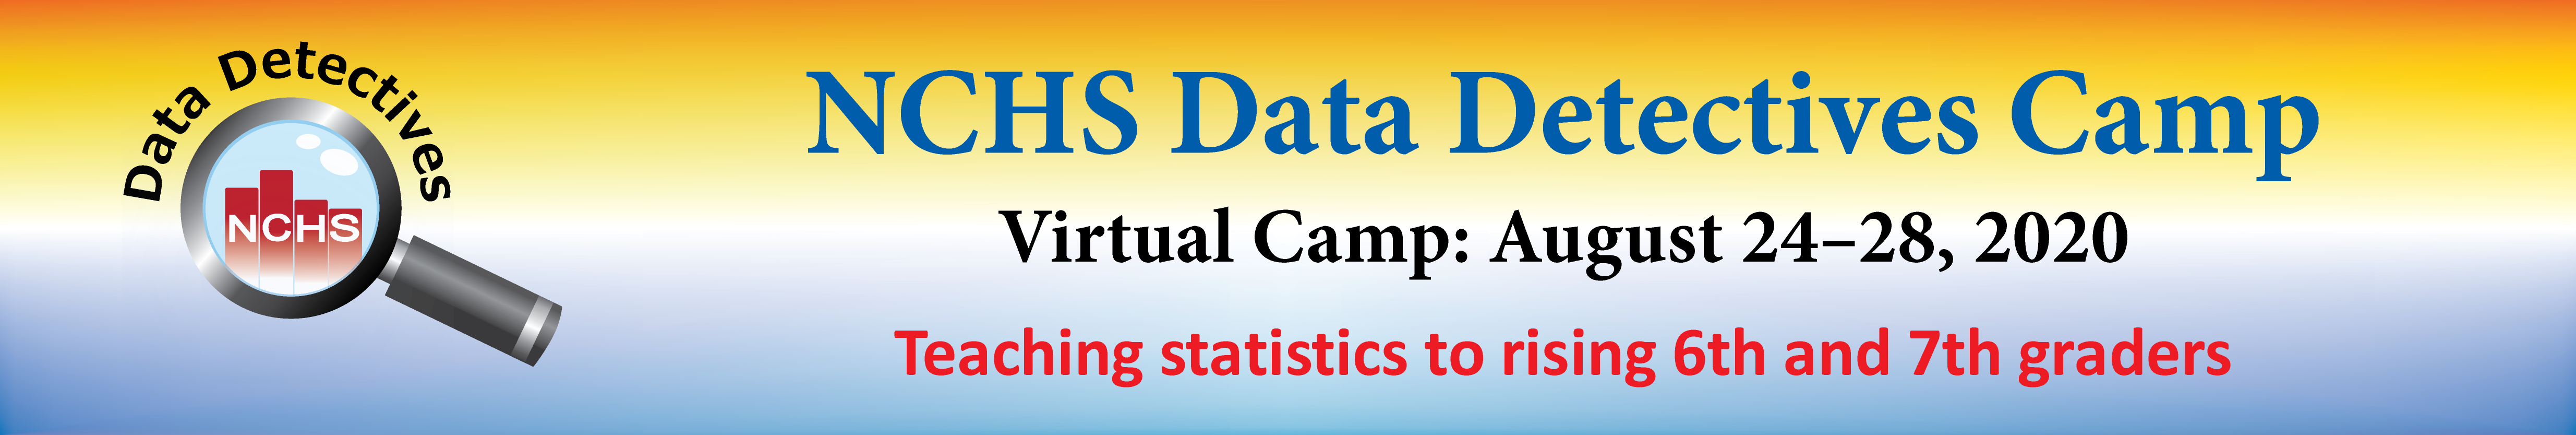 Data Detectives Camp Banner